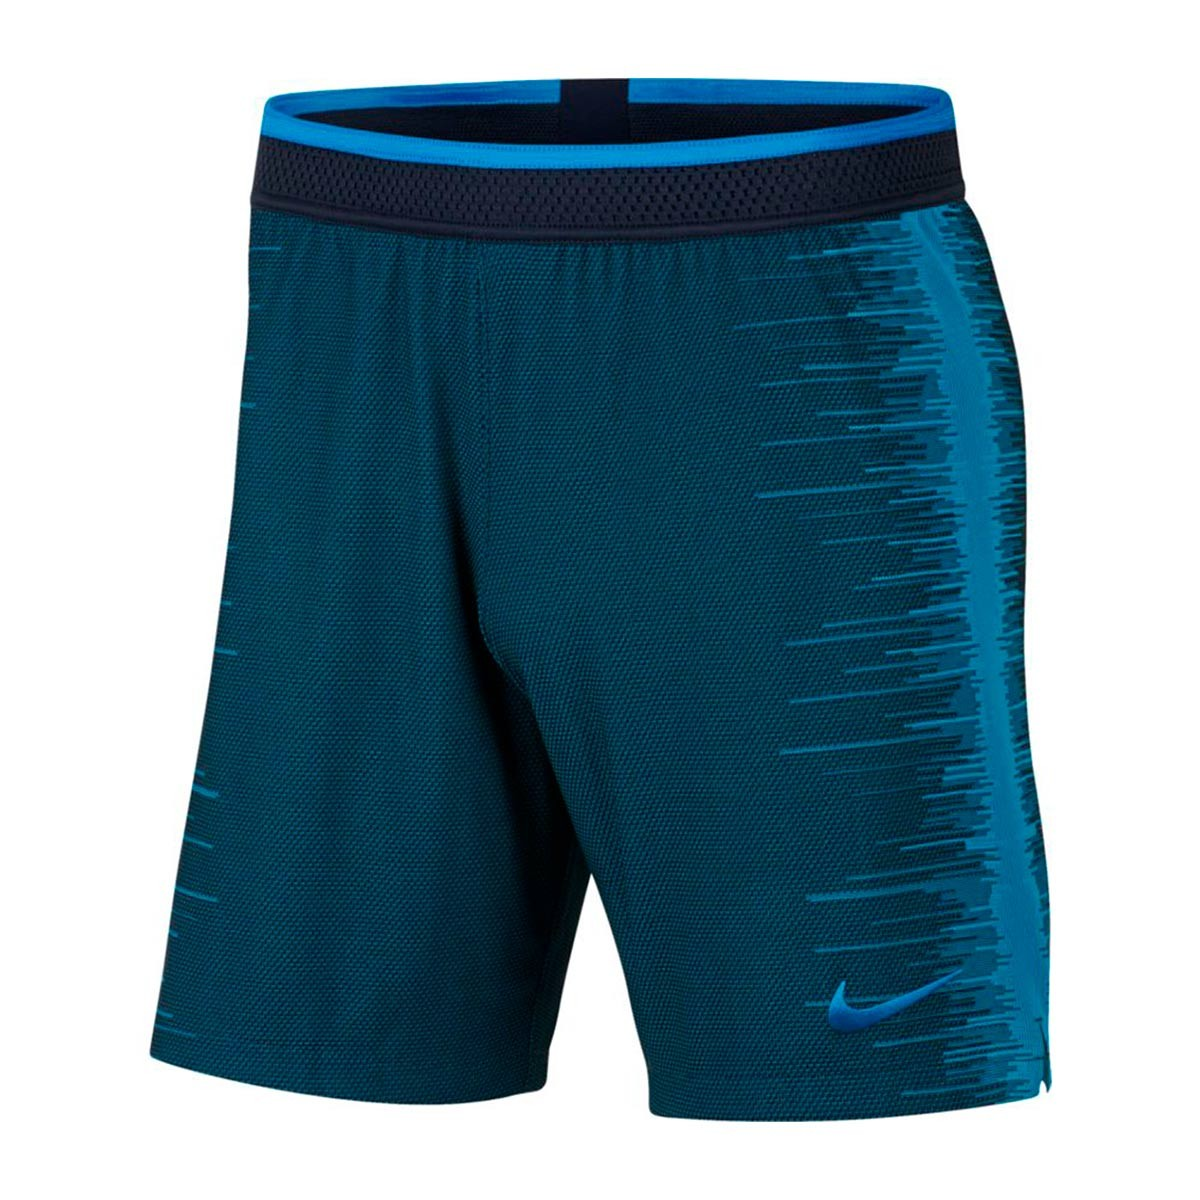 2510d5a79618 Shorts Nike Vaporknit Repel Strike Obsidian-Blue hero - Football ...